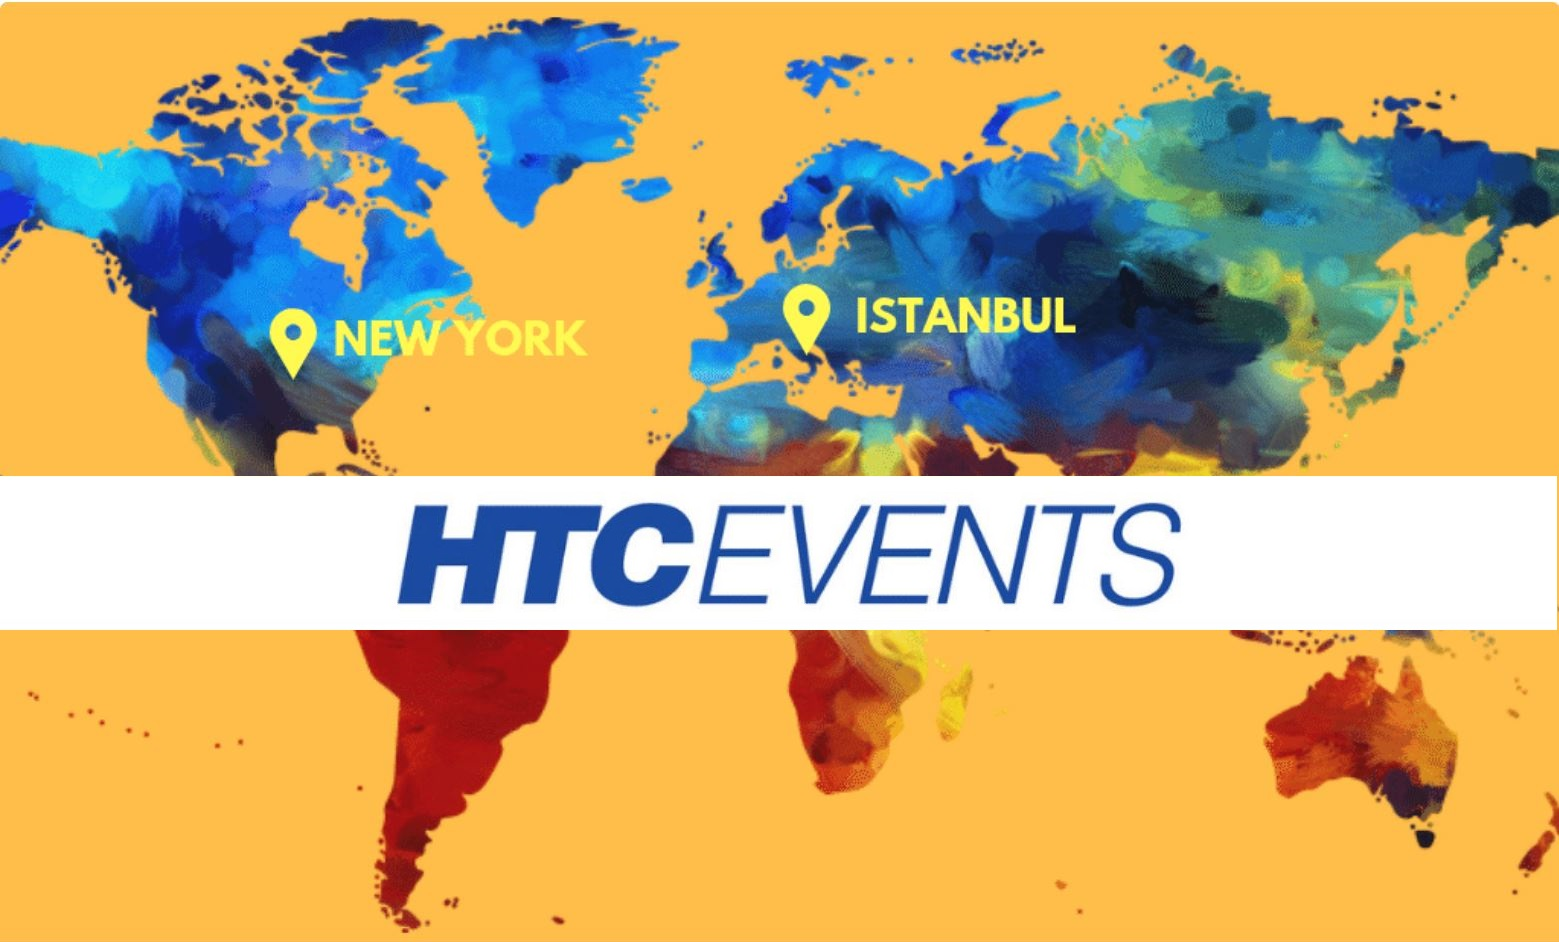 HTC Events